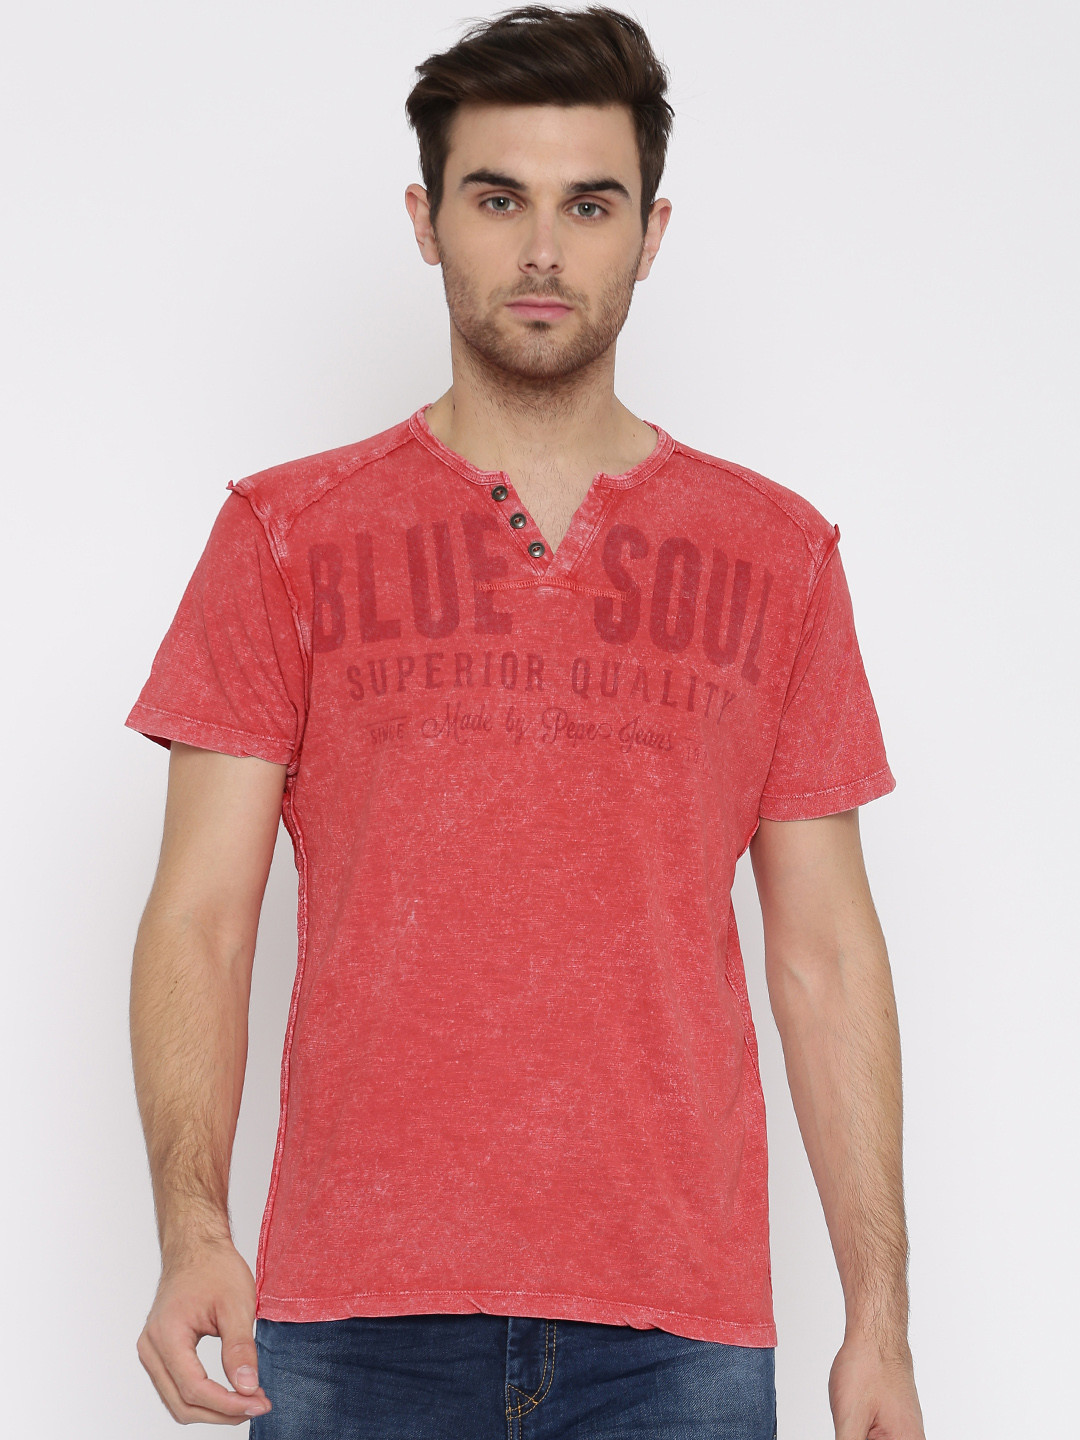 Pepe jeans printed red cotton slim fit t shirt g3 for Slim fit cotton shirts